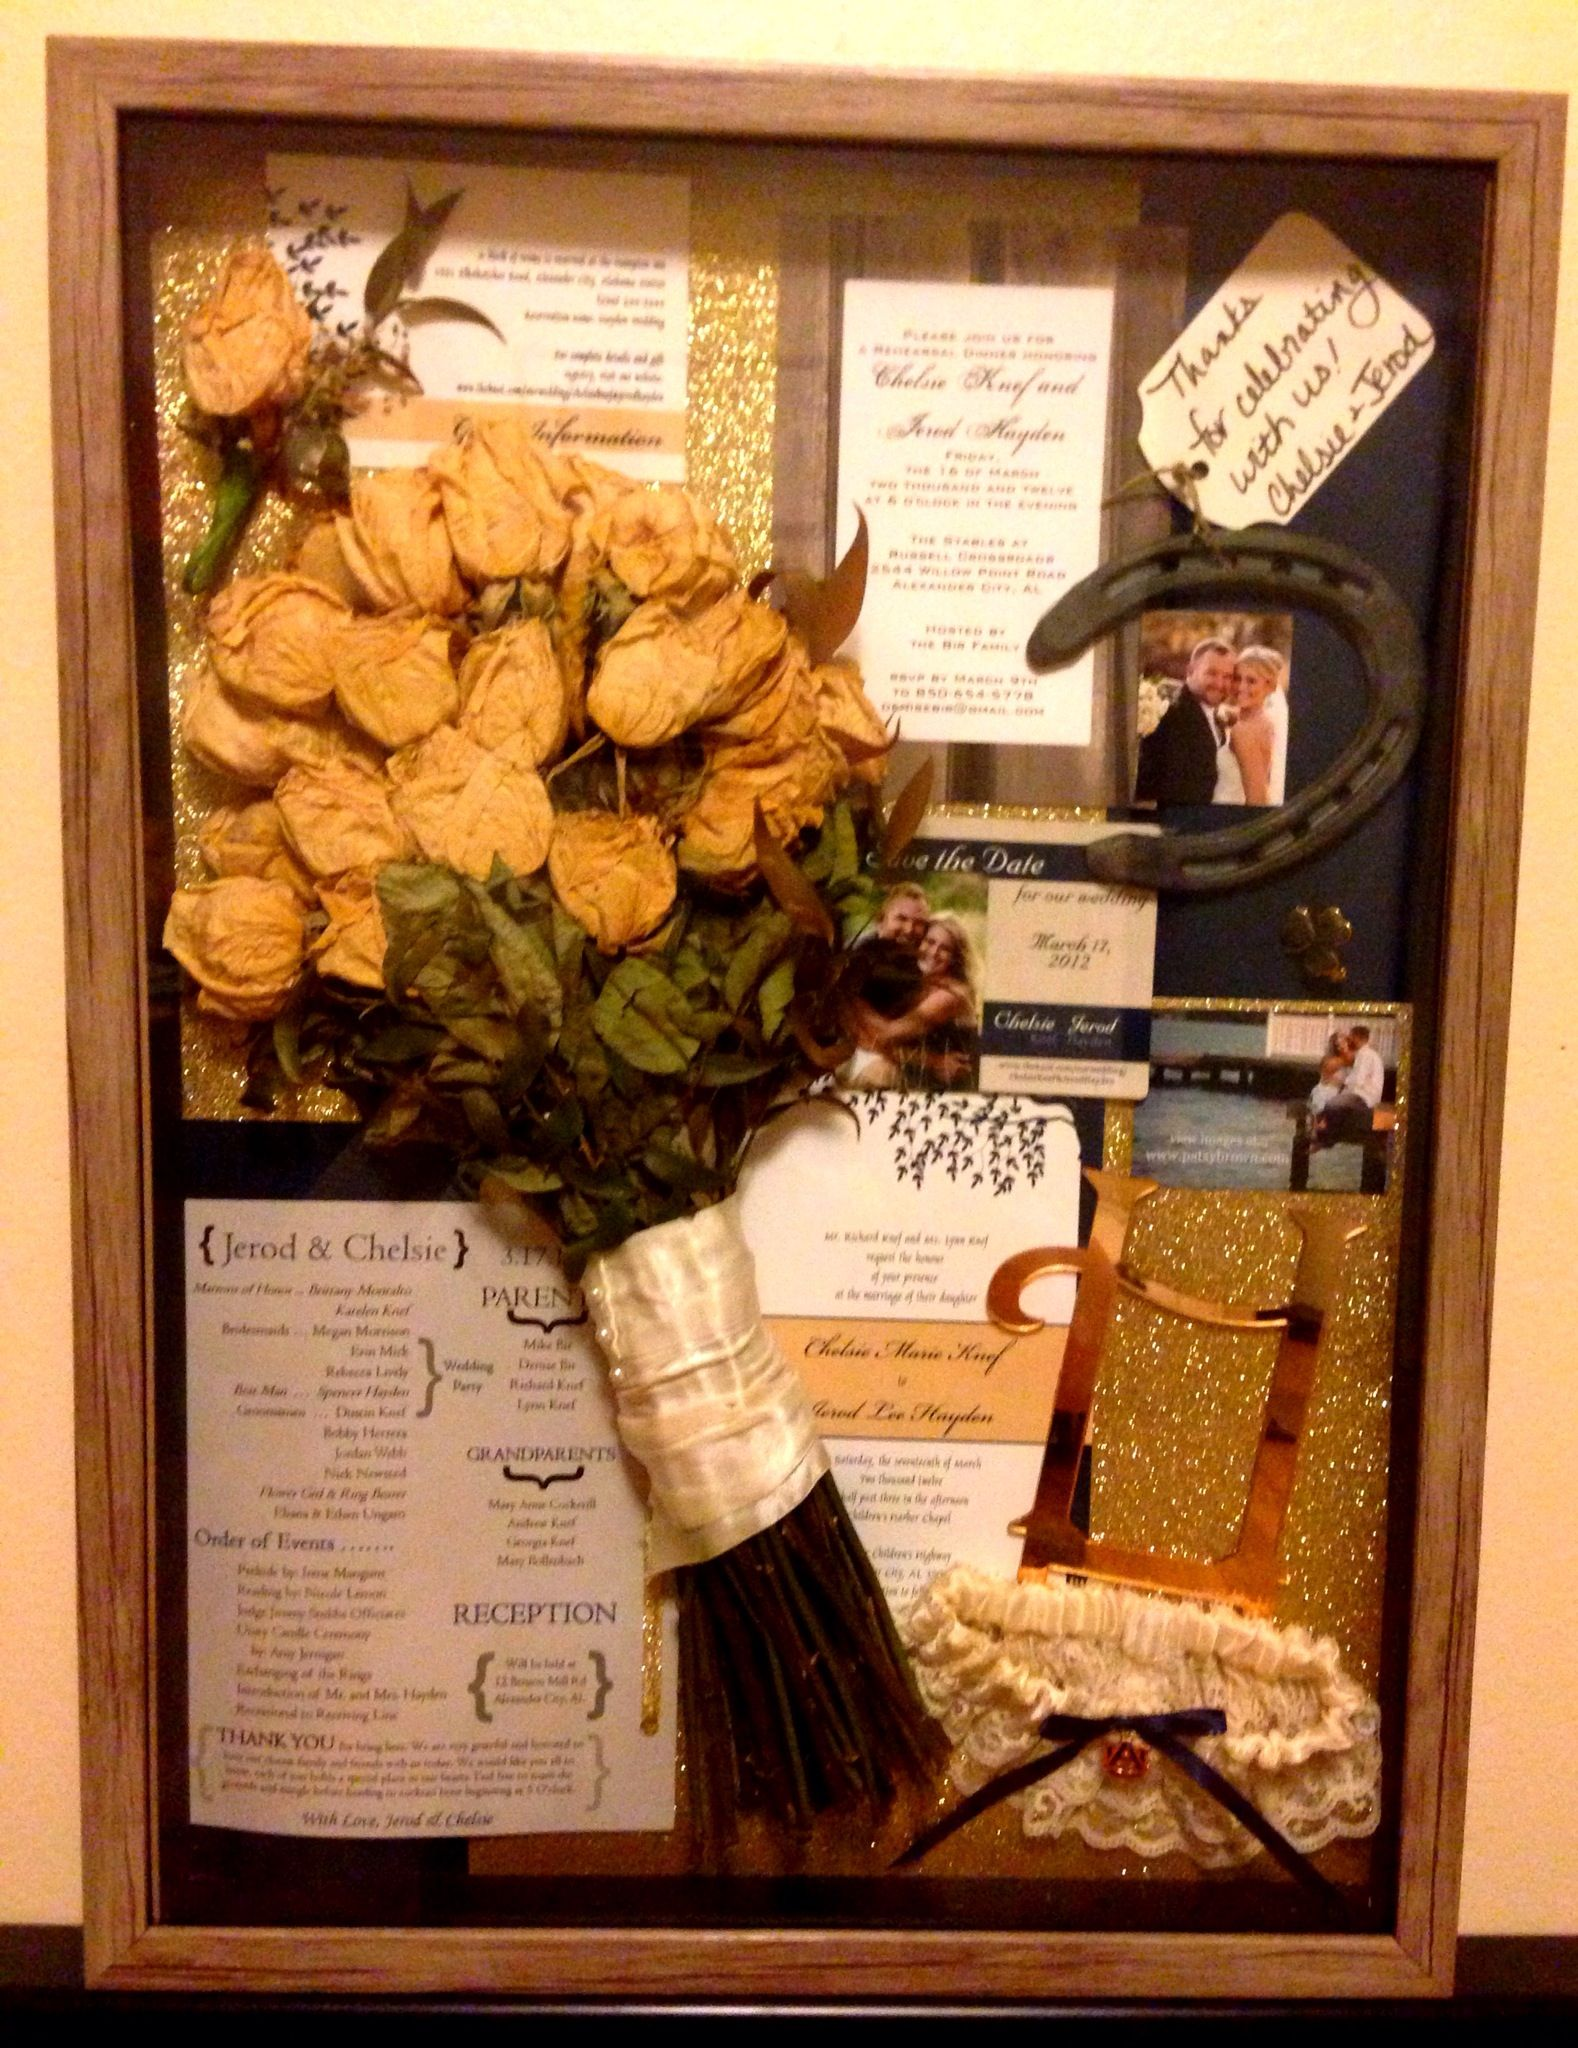 Our Wedding Shadow Box 3 17 2012 The Best Day Ever Project